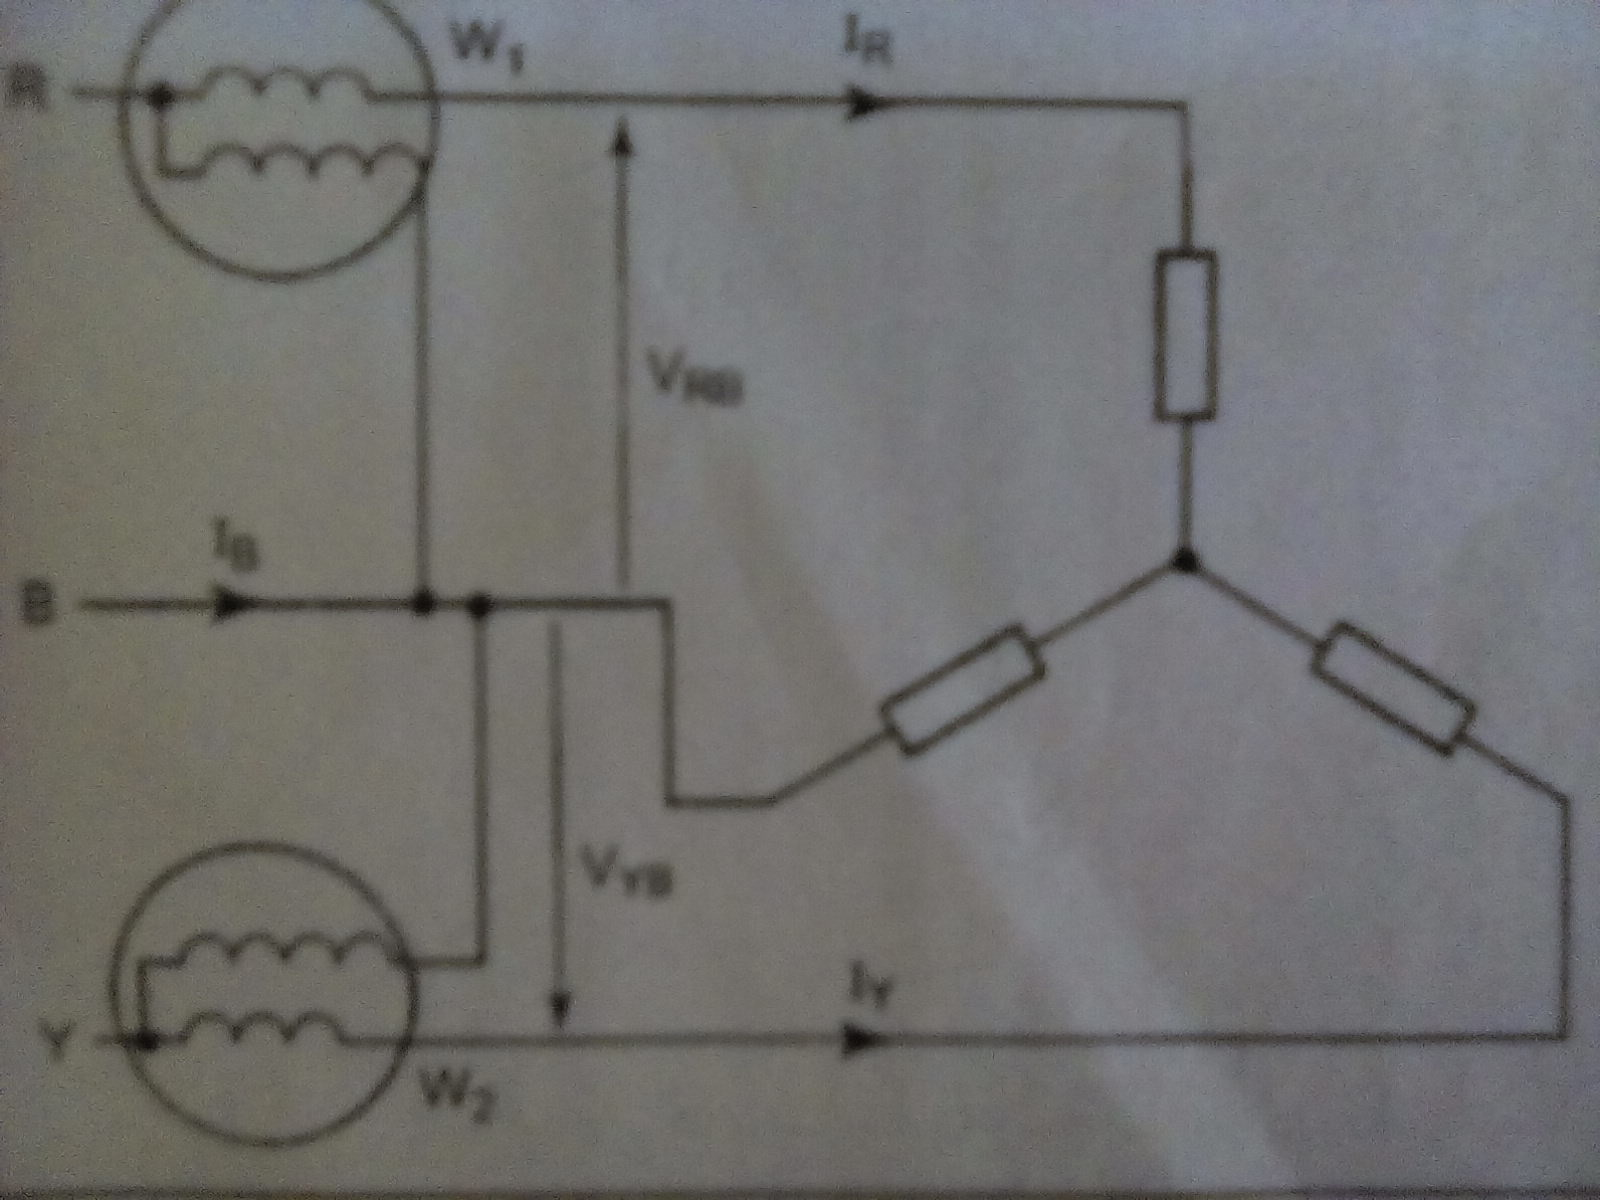 Below figure shows the wiring diagram of the Two W